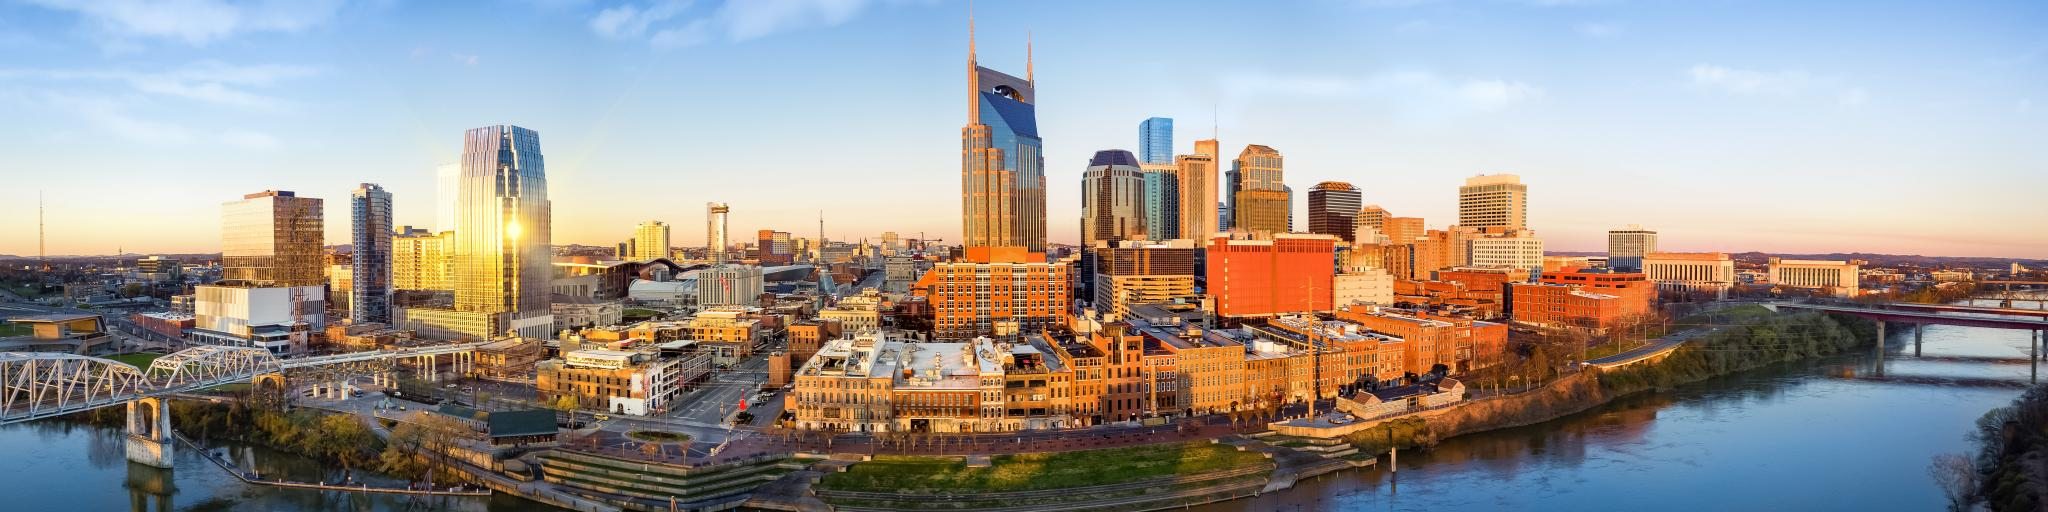 Nashville skyline at sunrise with the Cumberland River passing Downtown